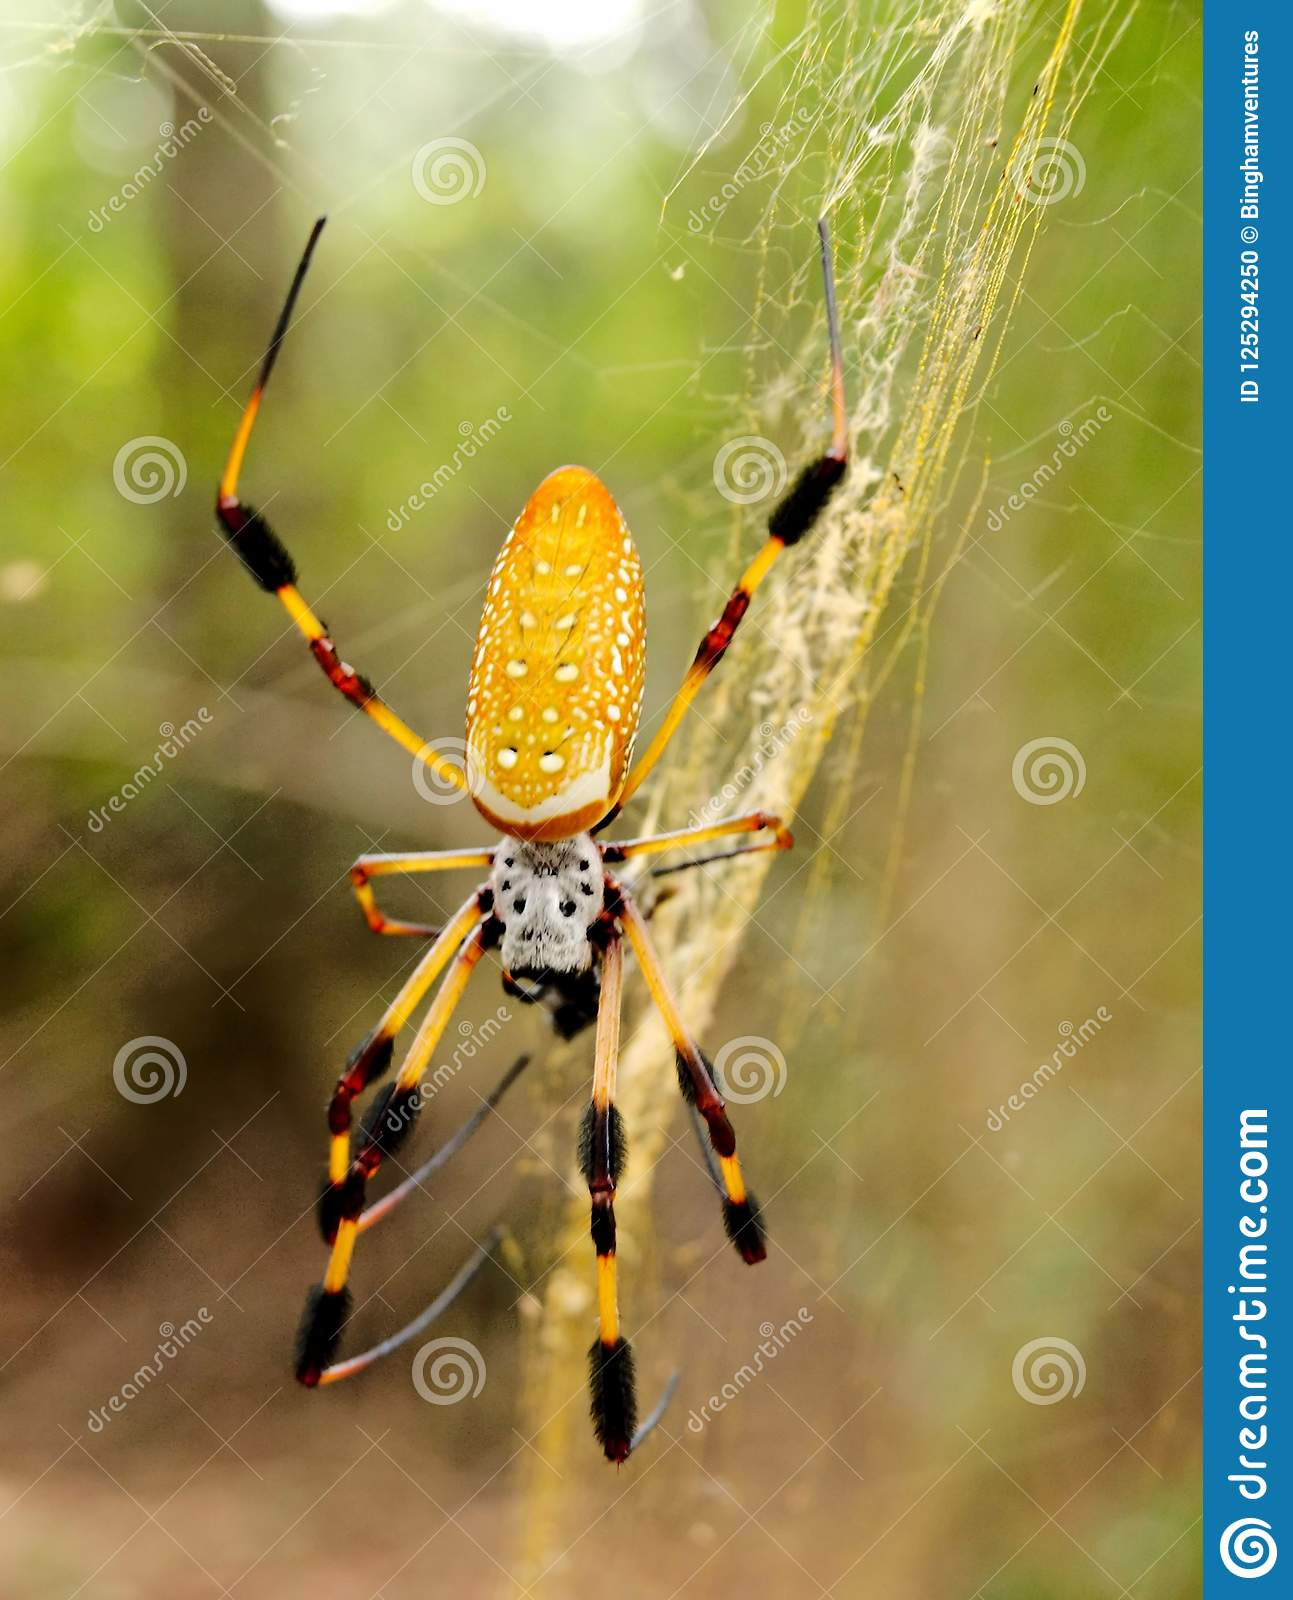 Banana Spider Web Pictures